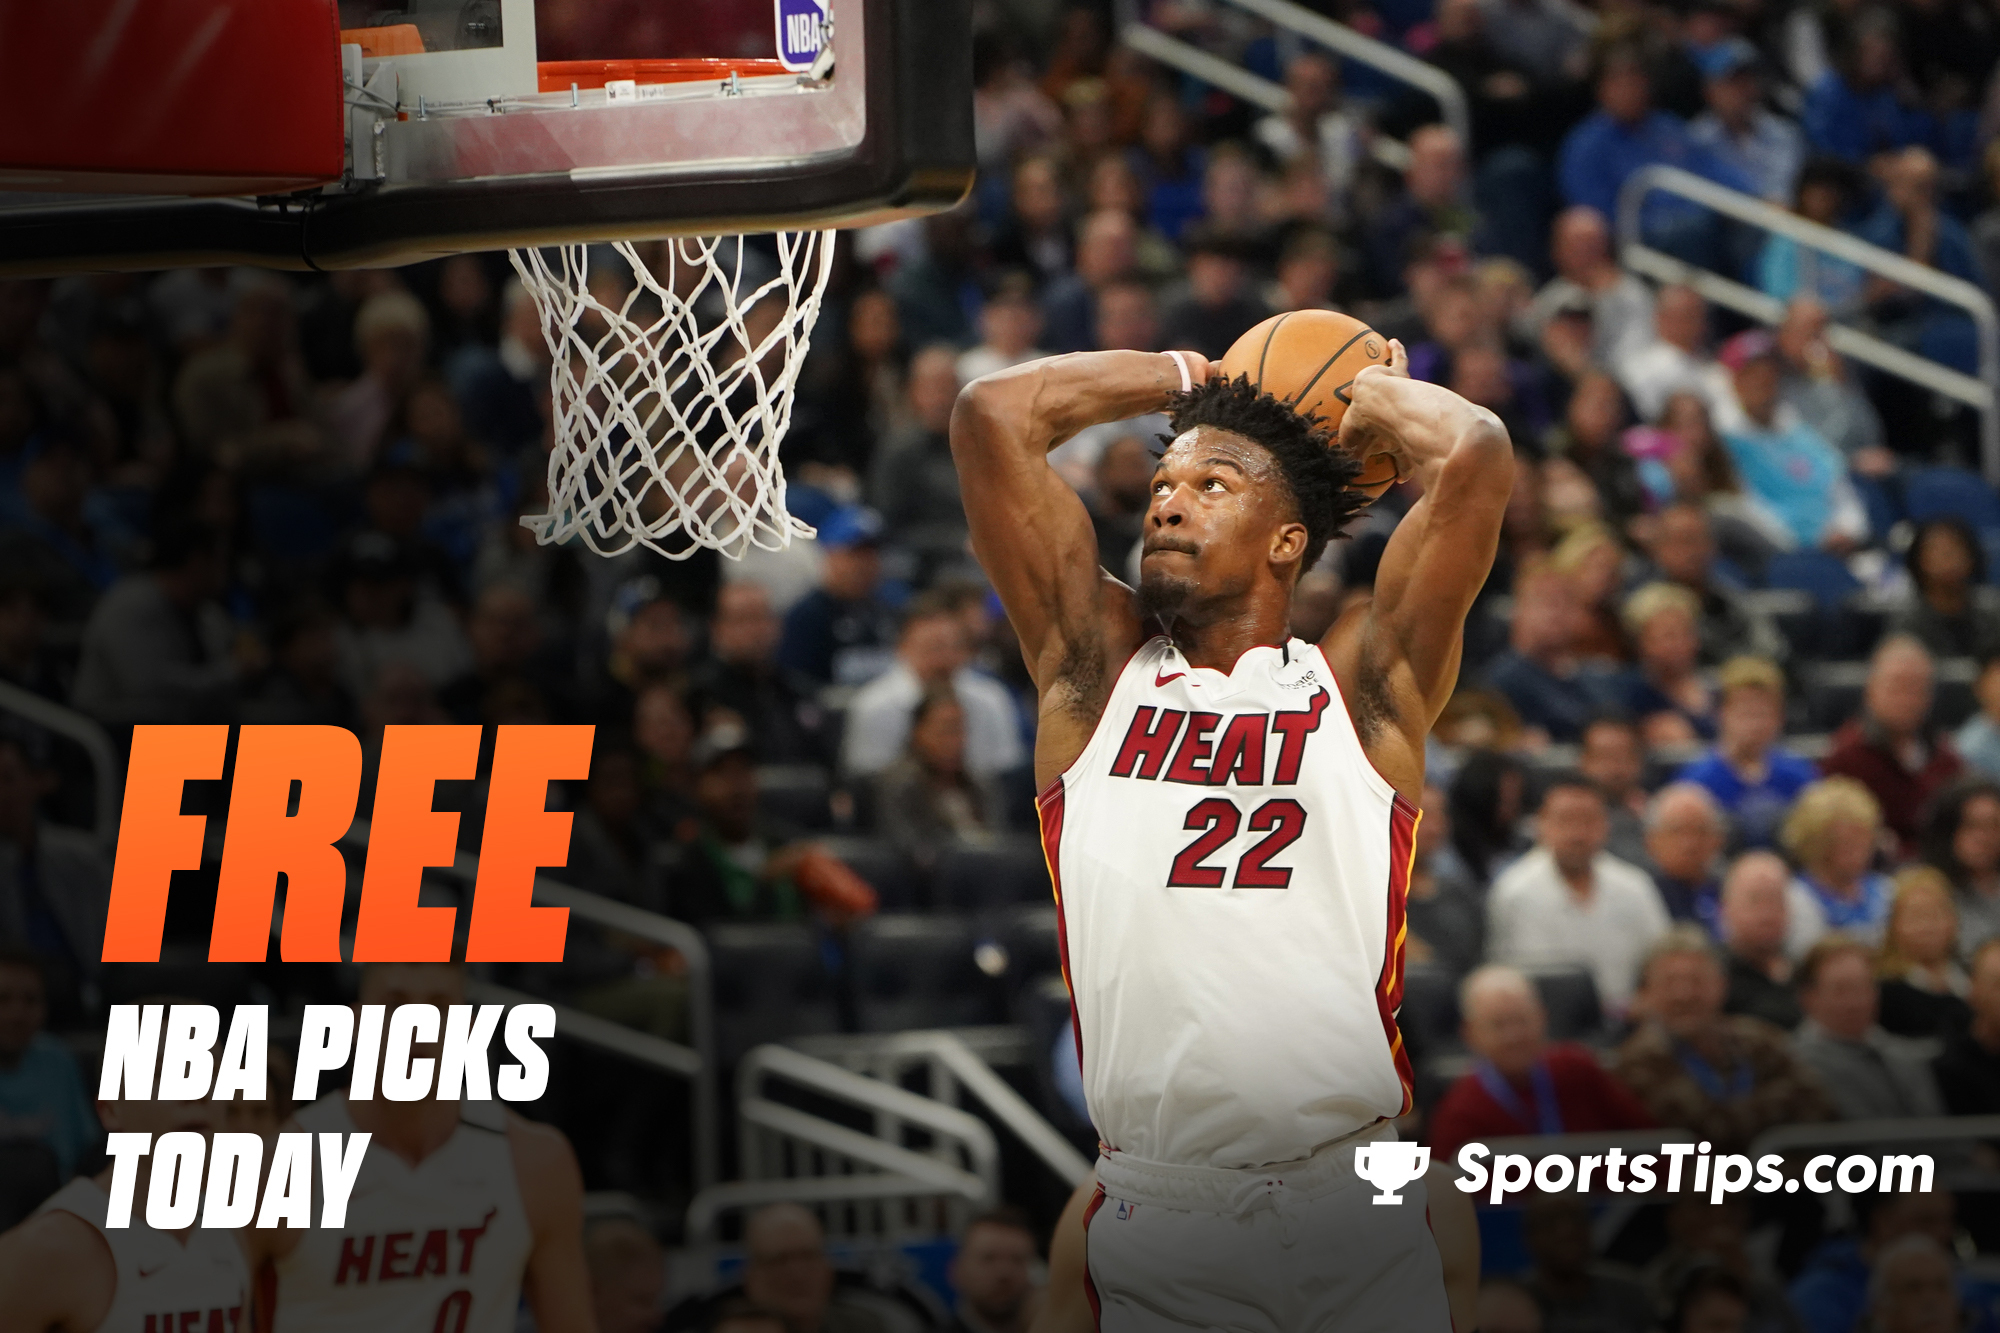 Free NBA Picks Today for Wednesday, February 17th, 2021